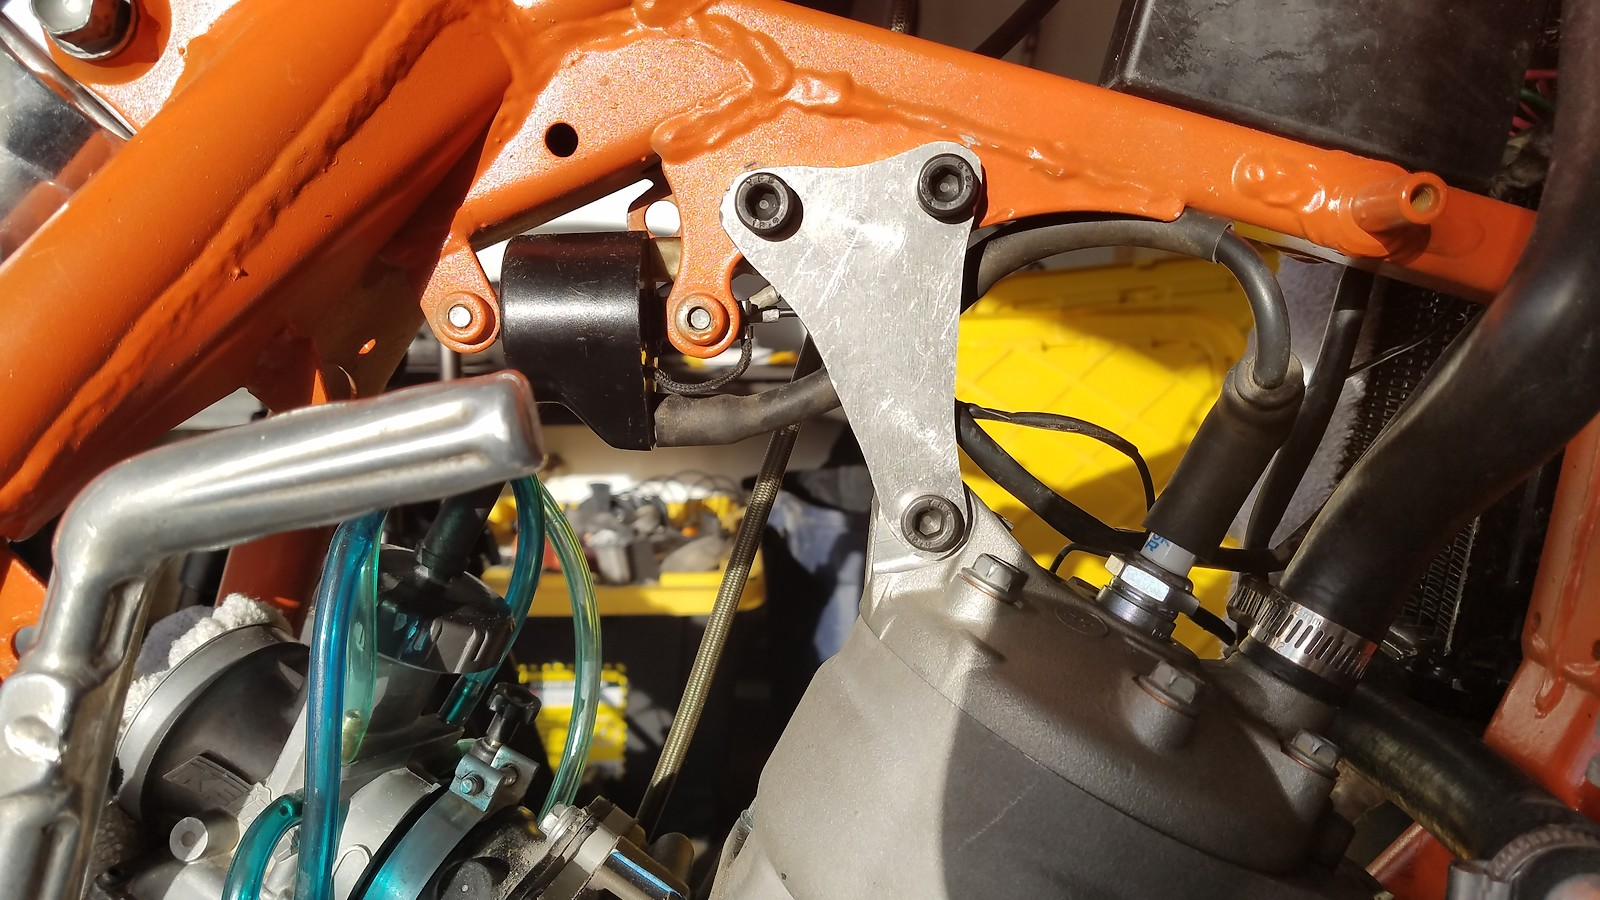 2003 Ktm 125sx 400 Craigslist Special Bike Builds Motocross 125 Sx Wiring Diagram Seal Thickness Compared To The Distance Between Upper Fork Lip And Bottom Of Circlip Groove Then I Cut Up Some Head Stays